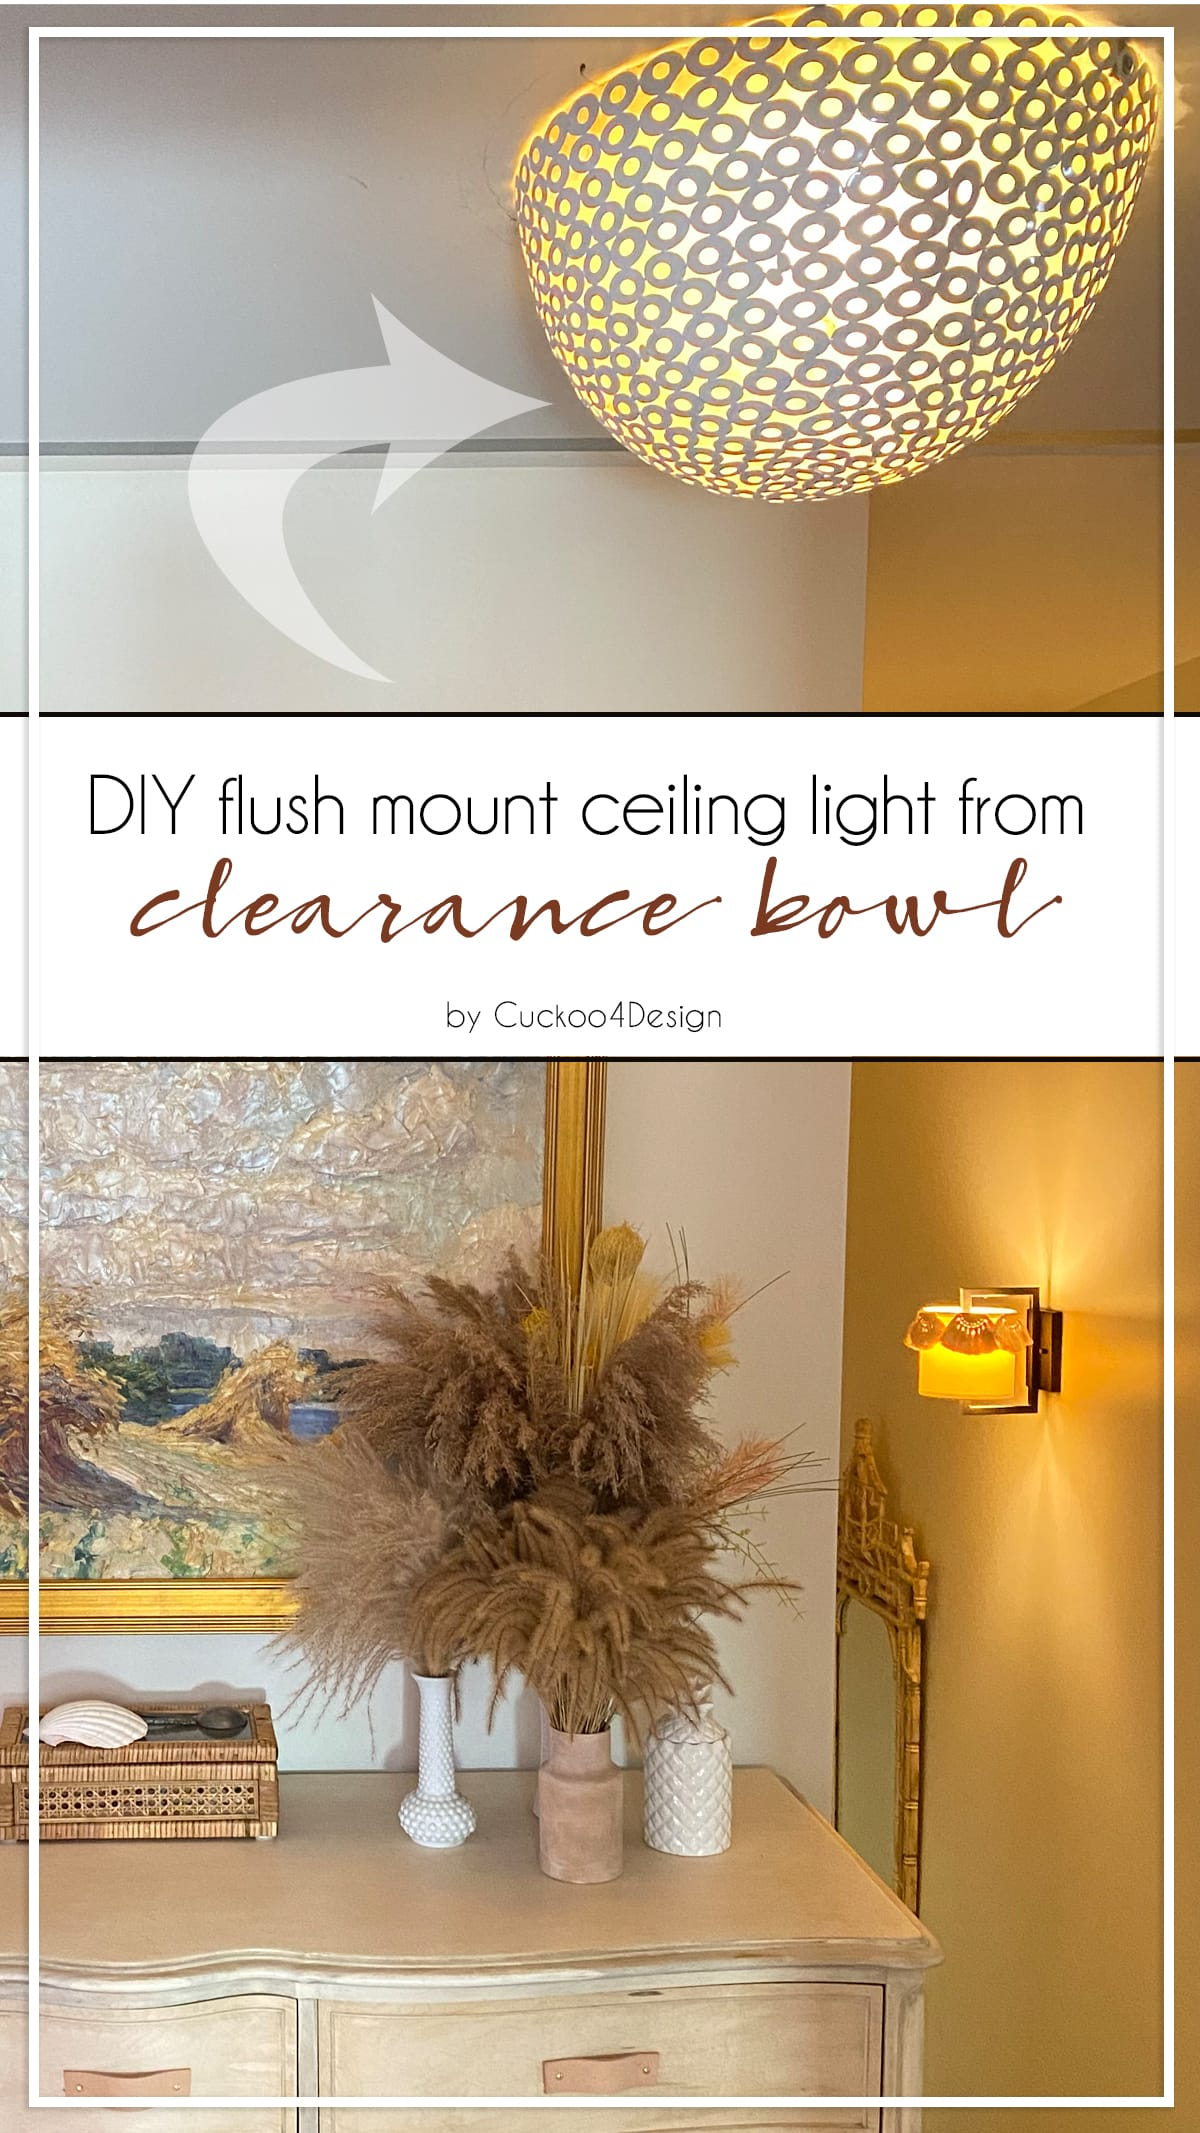 DIY flush mount ceiling light from clearance bowl